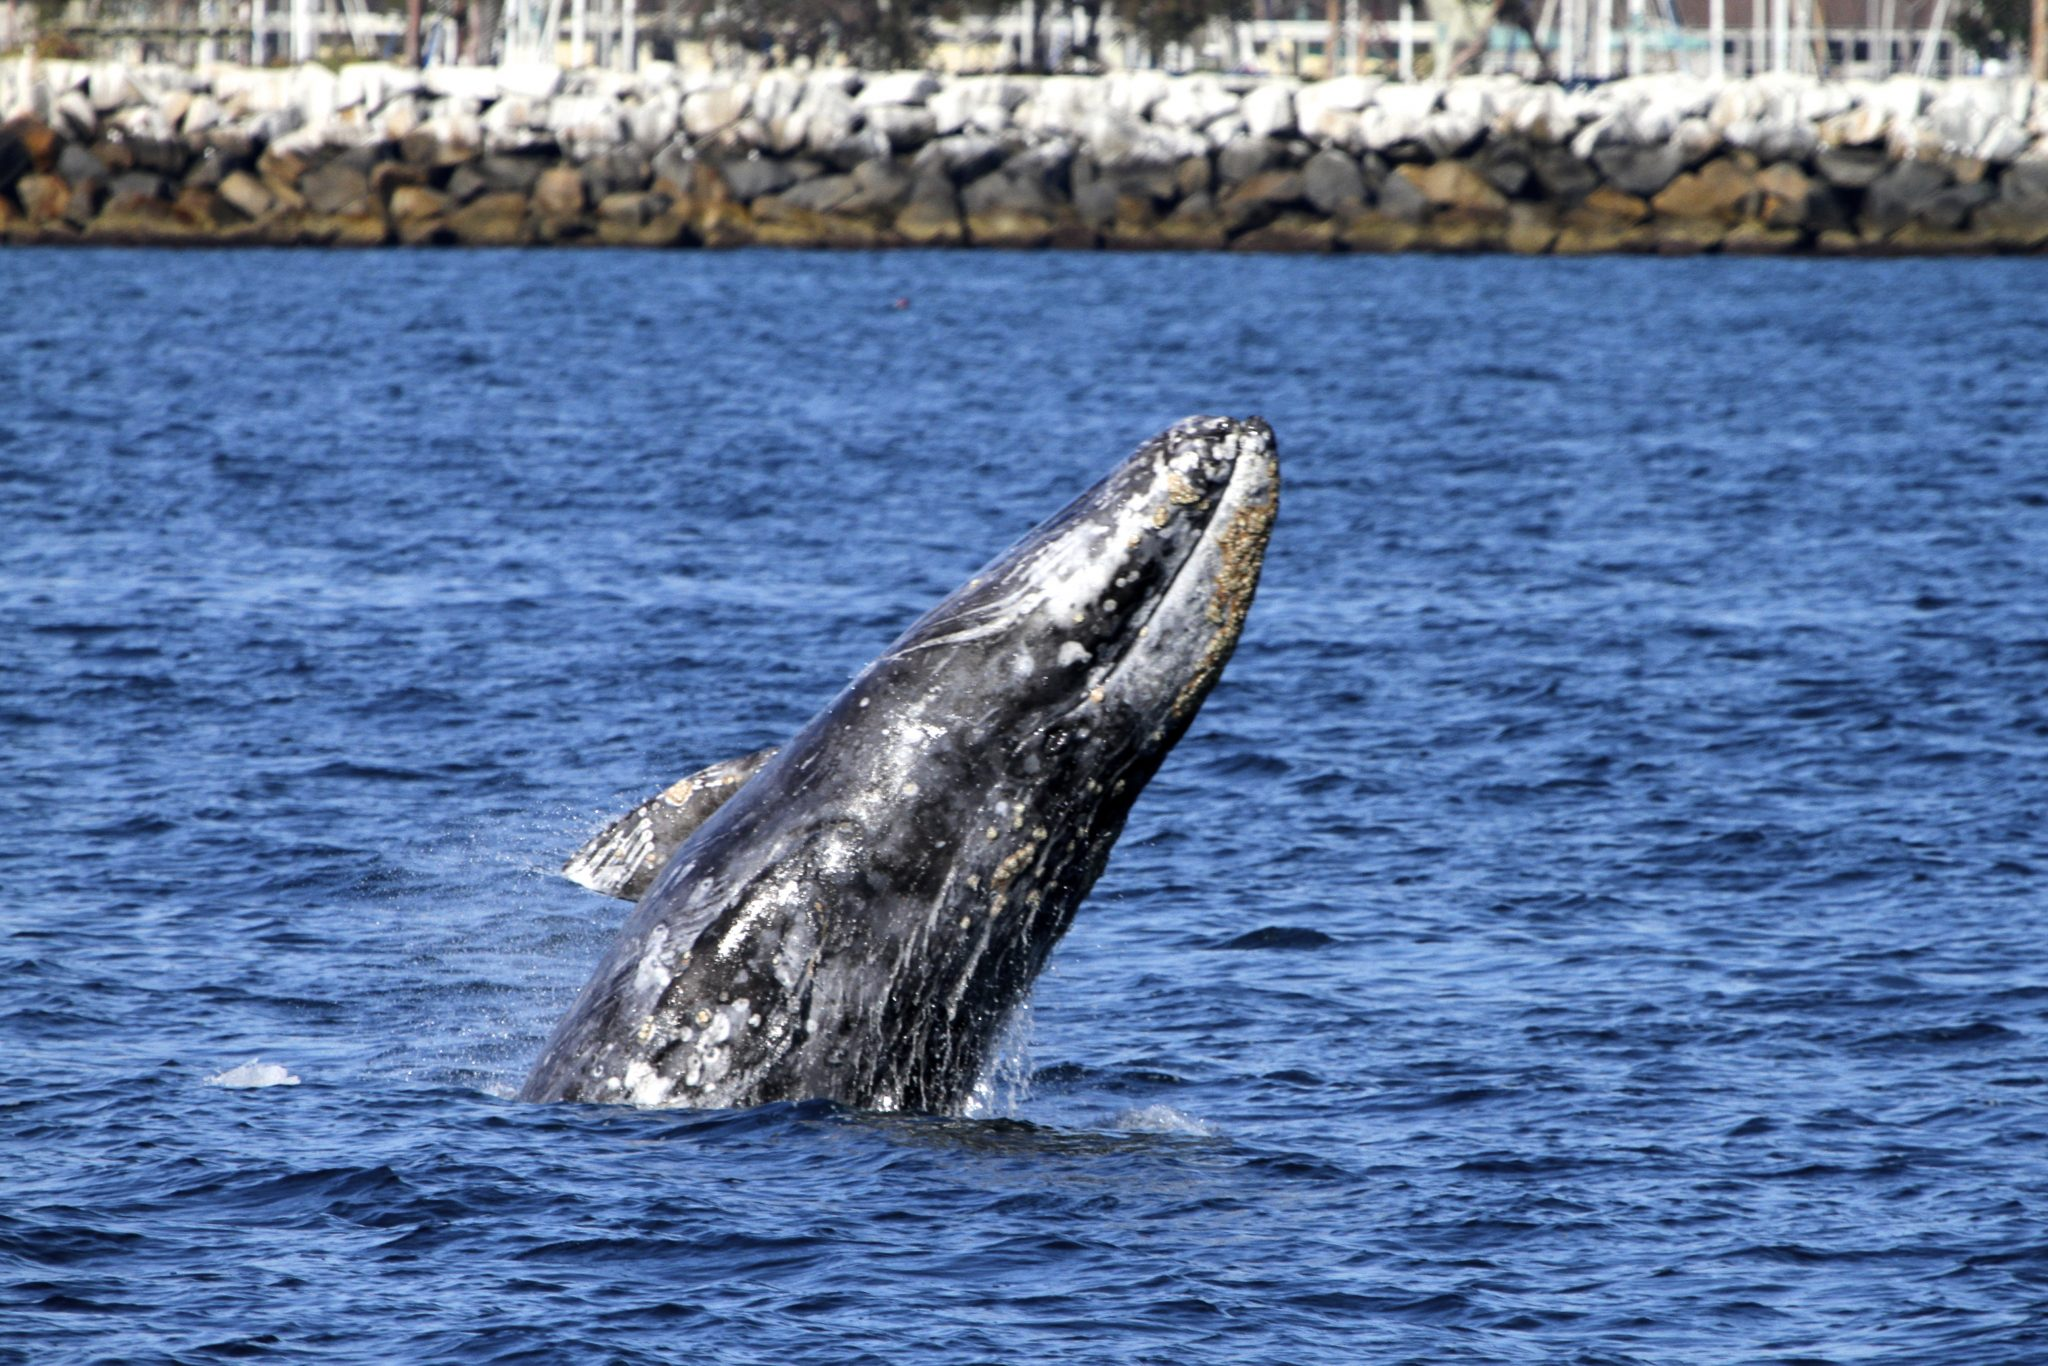 Whale Watching at Dana Point Harbor